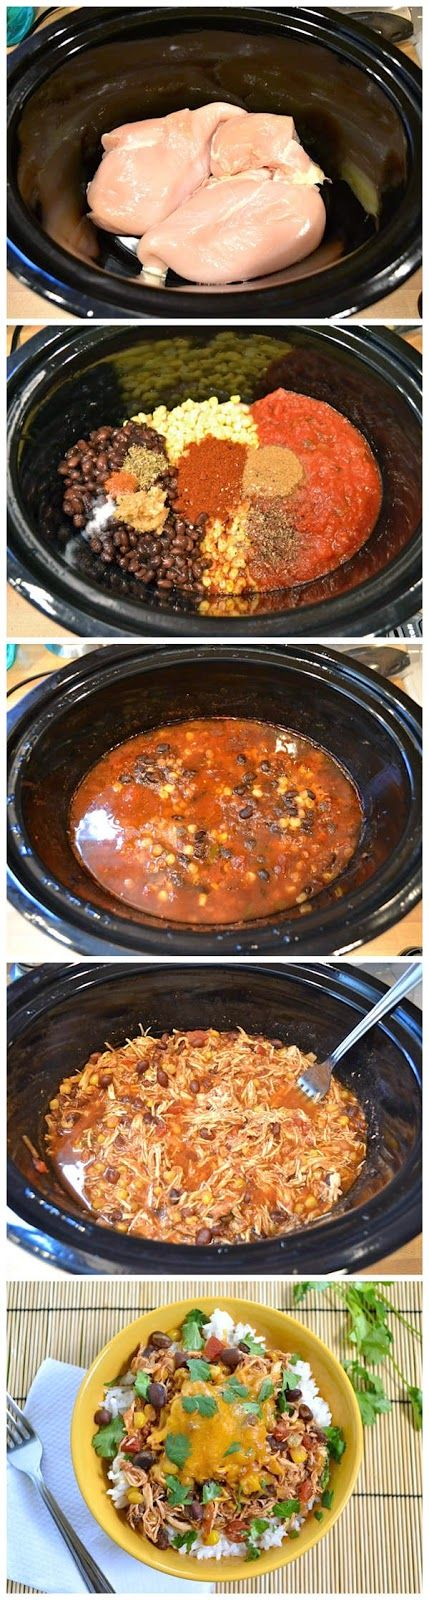 This is a super-easy recipe and one I like to make to have when company comes over, as most of the work is done in the slow-cooker.    Ingre...